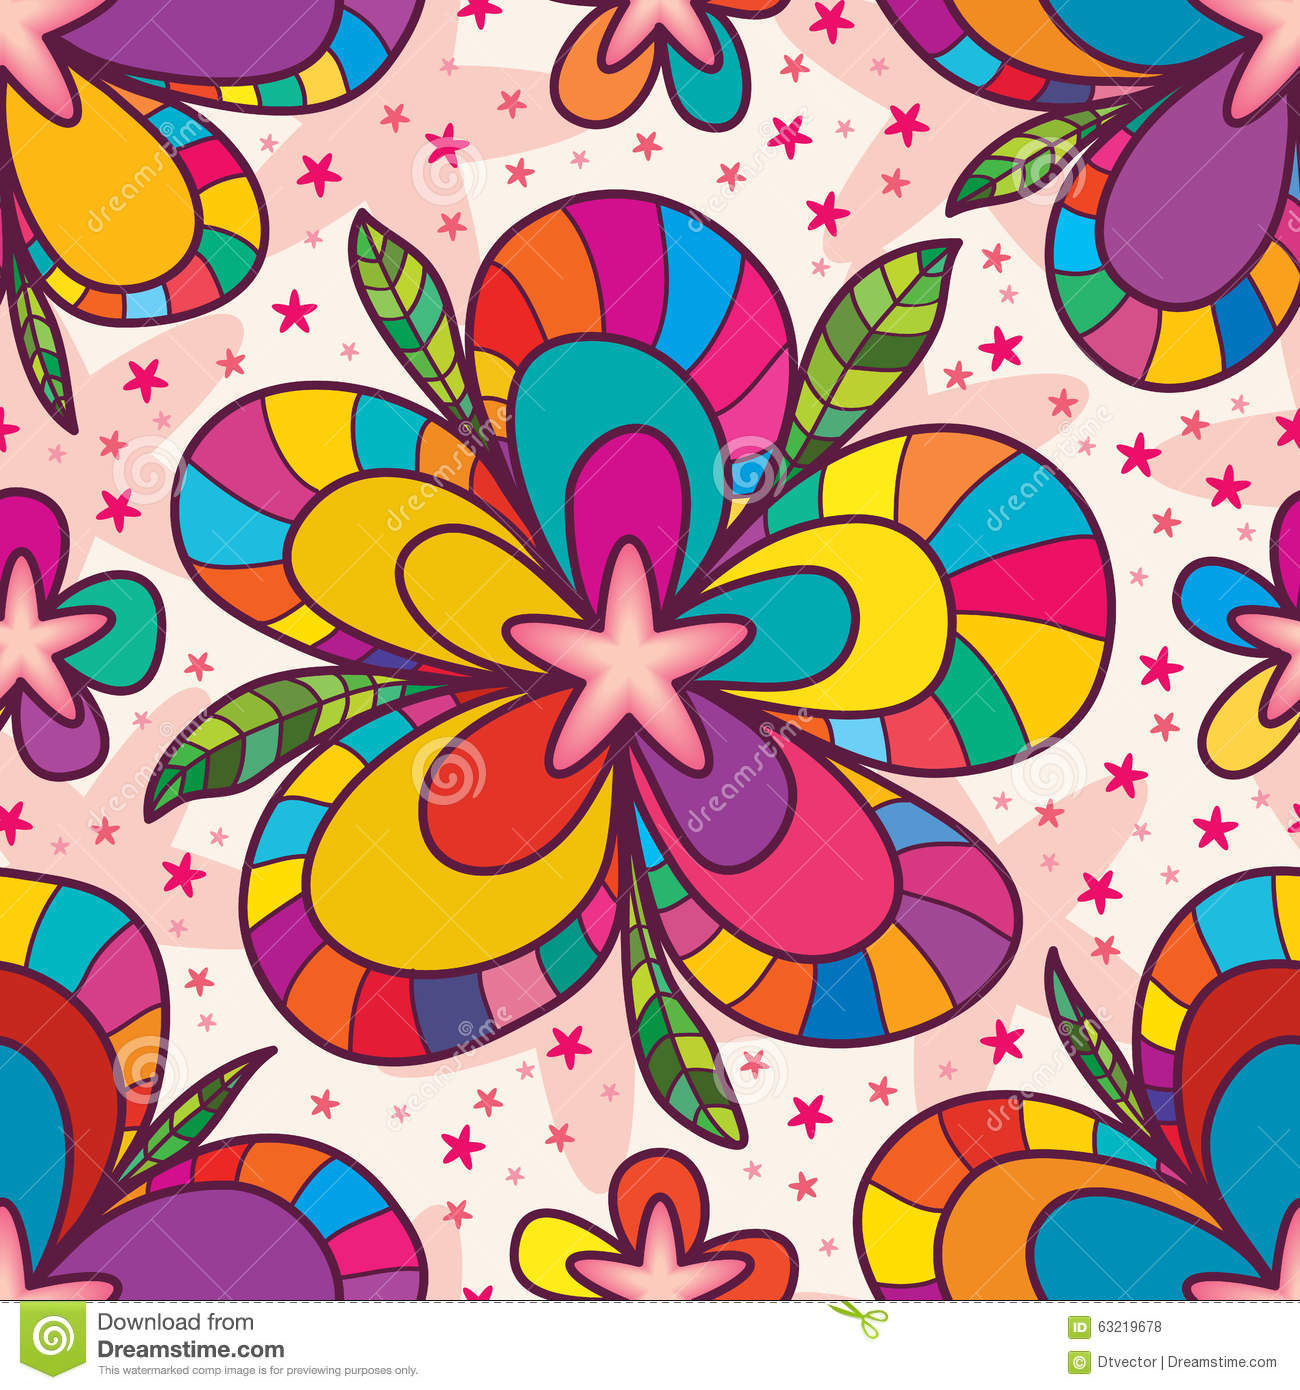 Star Flower Drawing Seamless Pattern Stock Vector ...